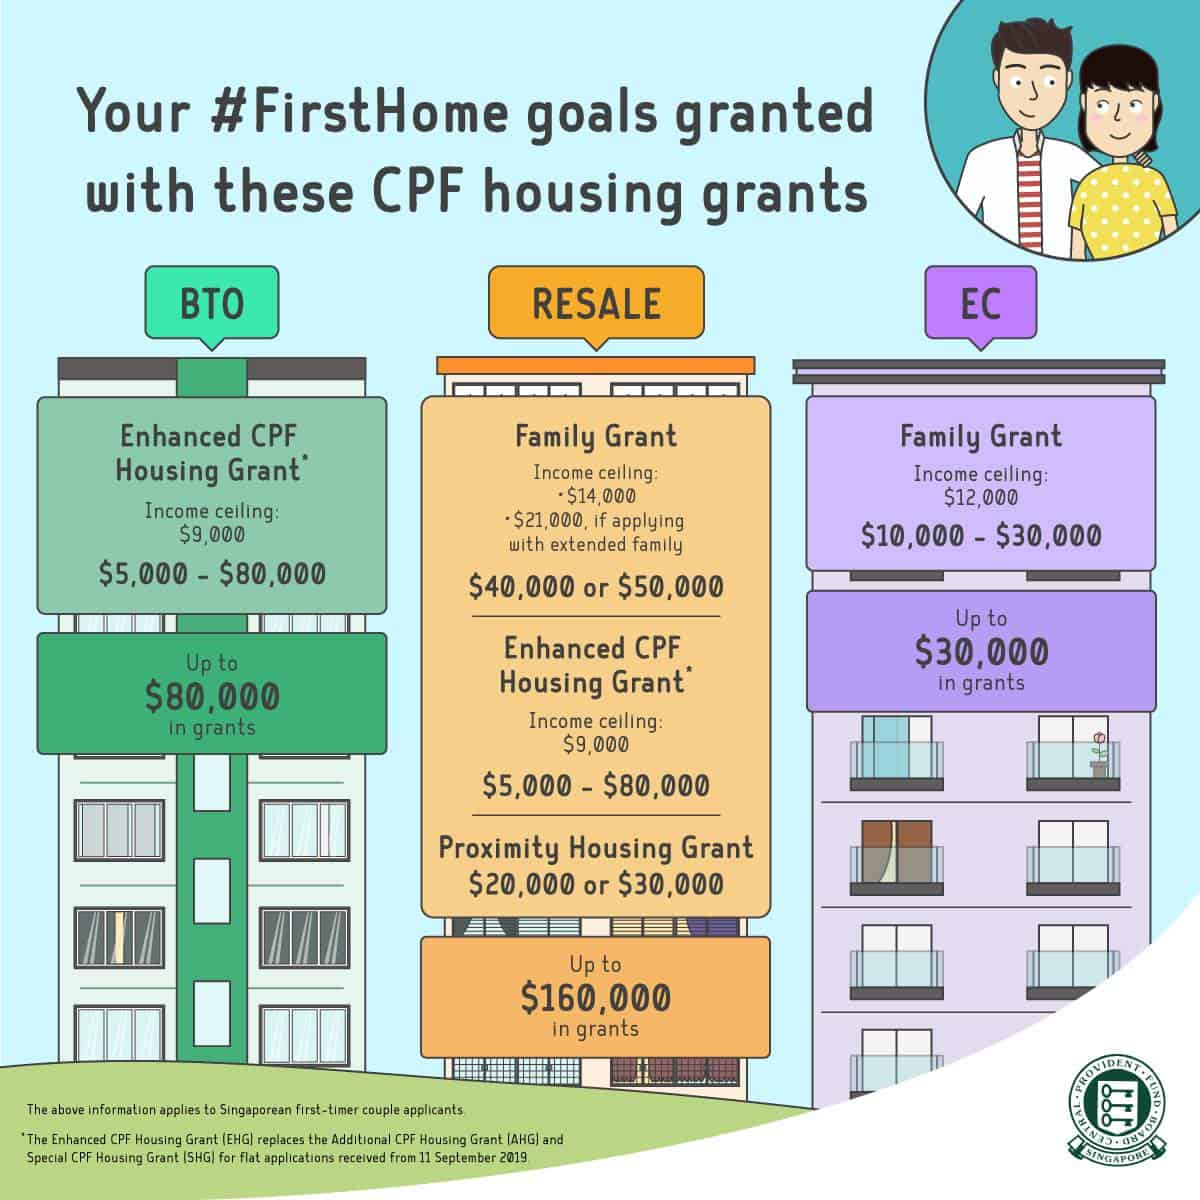 Enhanced CPF Housing Grant, $500 million Enhanced CPF Housing Grant disbursed to 15,600 first-time buyers